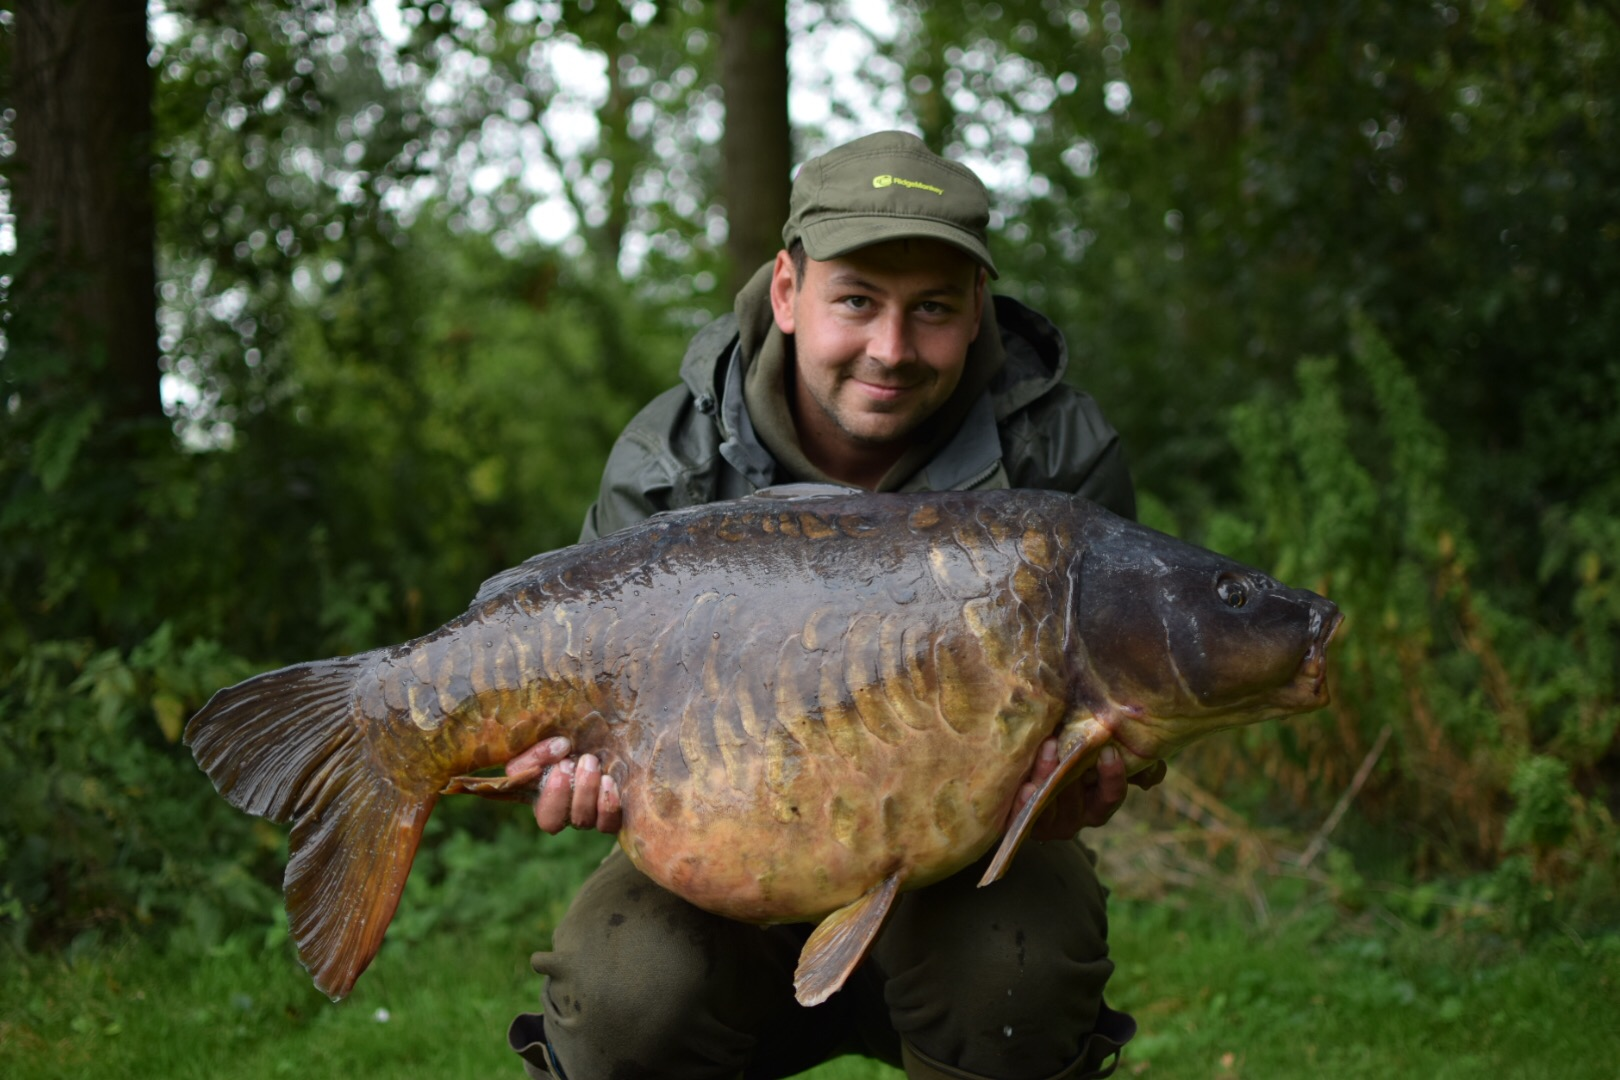 The Small Plated at 41lb 12oz